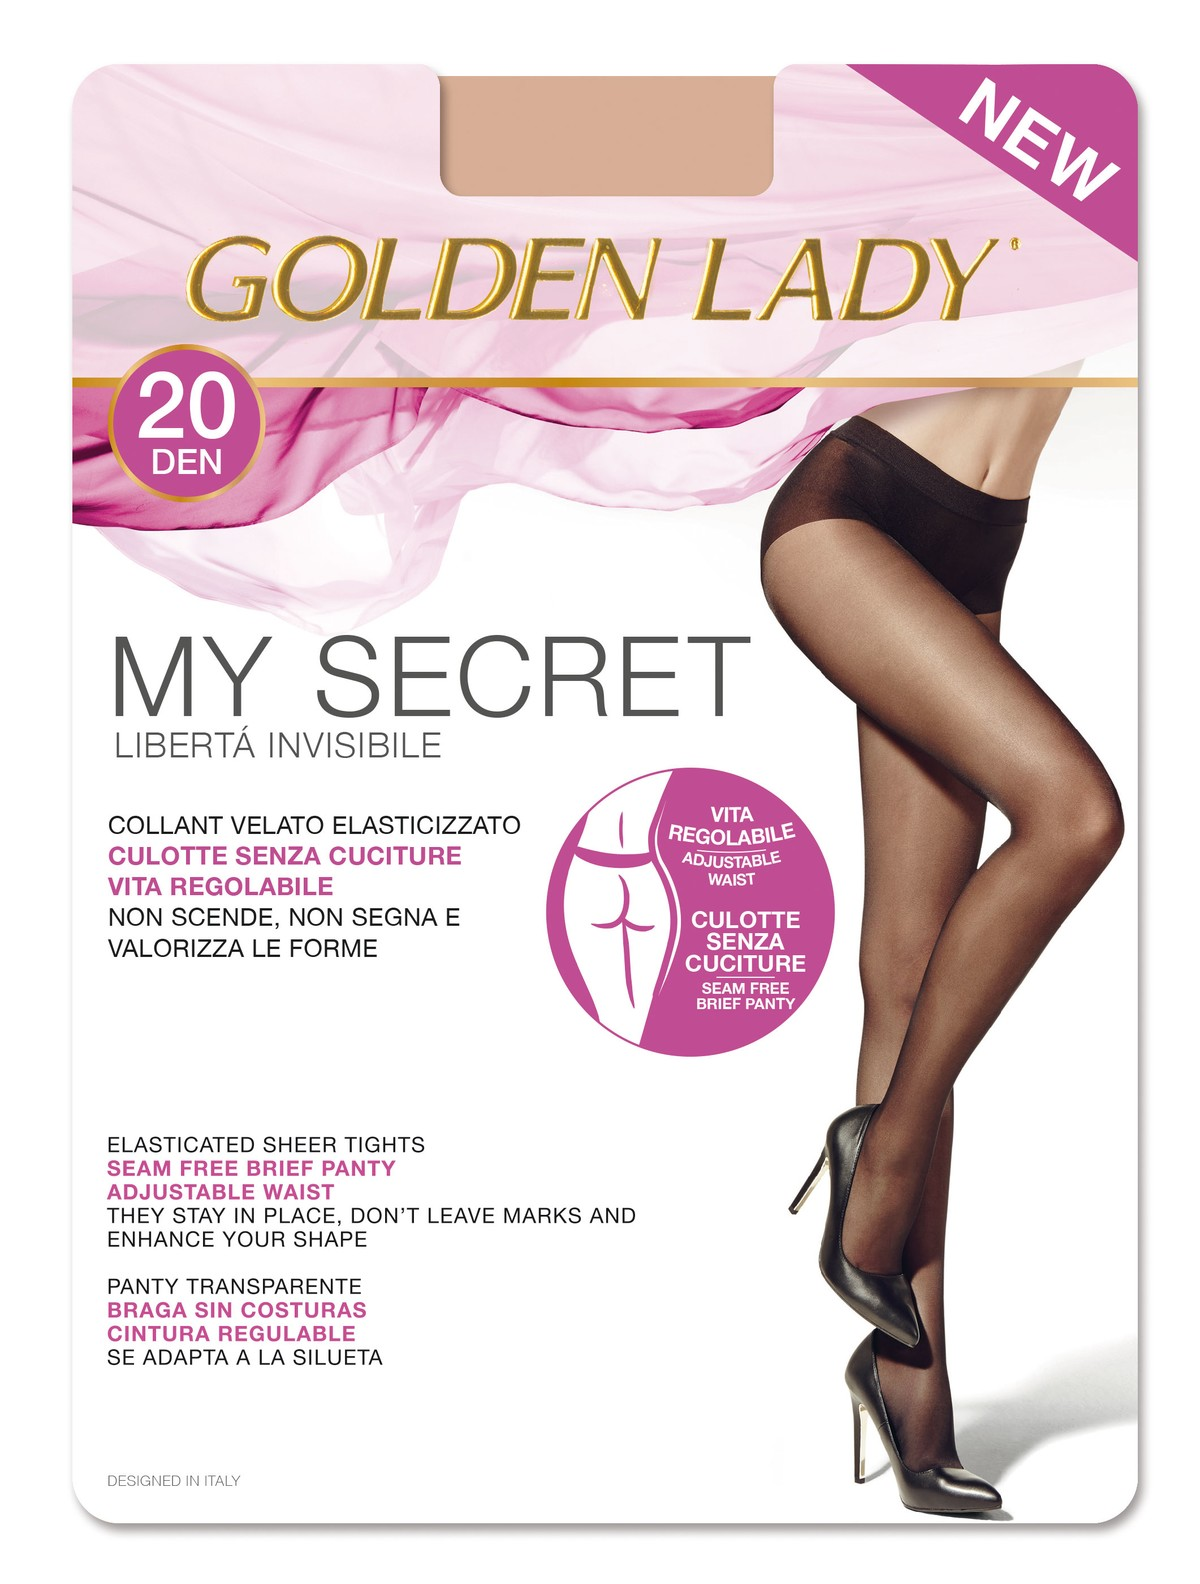 22b78da4b Golden Lady My Secret 20 Seamless sheer tights 20DEN